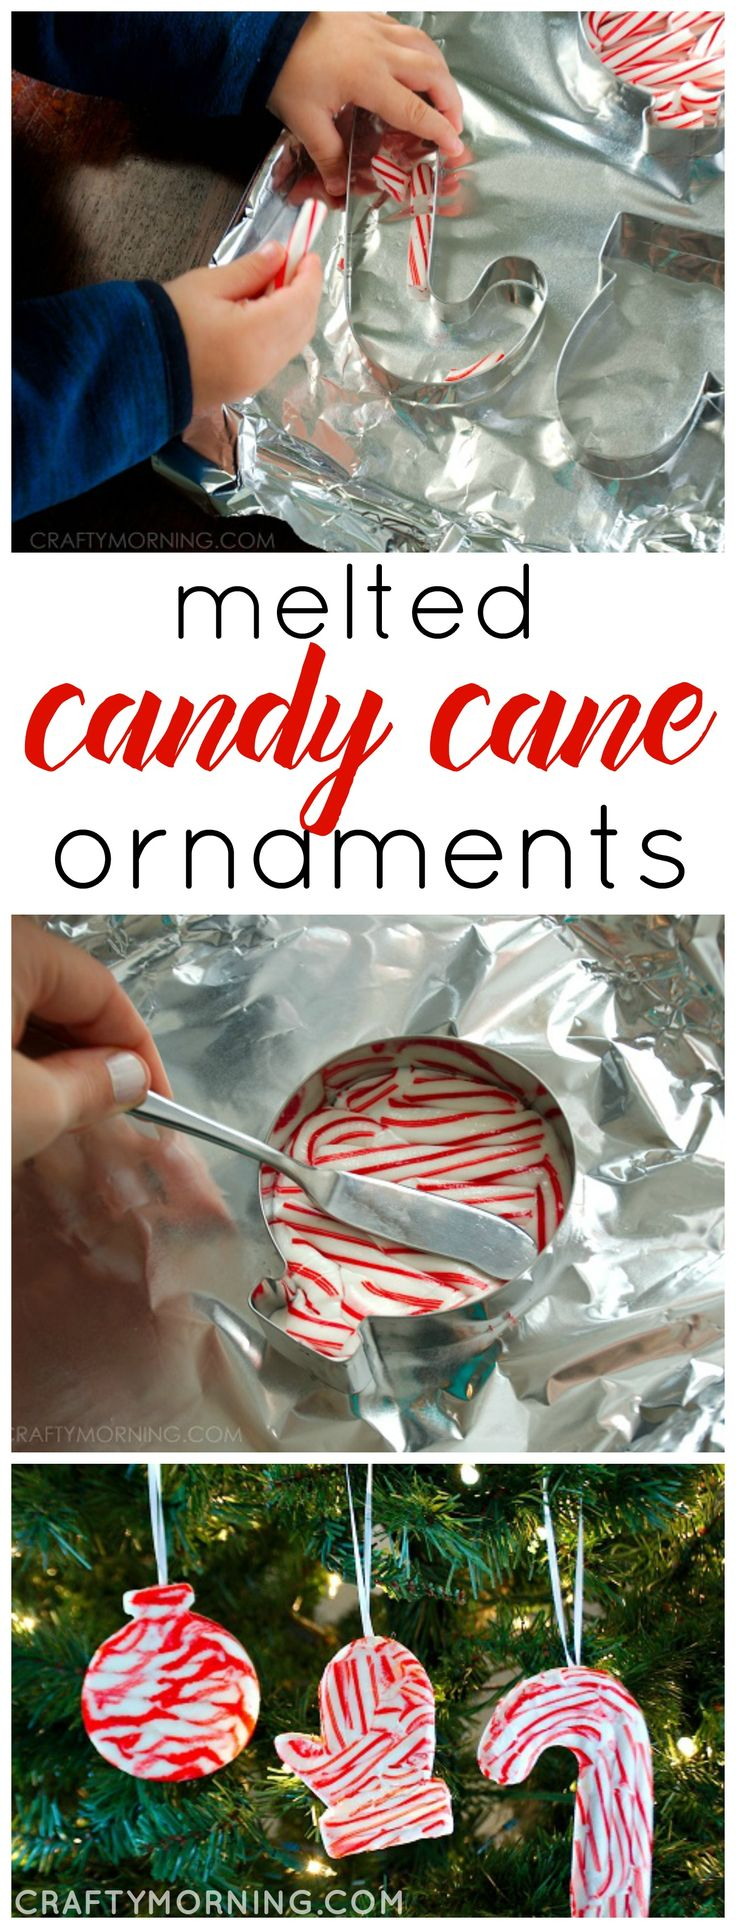 Have your kids make melted candy cane Christmas ornaments to hang on the tree! So fun and easy to do. They make great gifts too wrapped in little baggies.